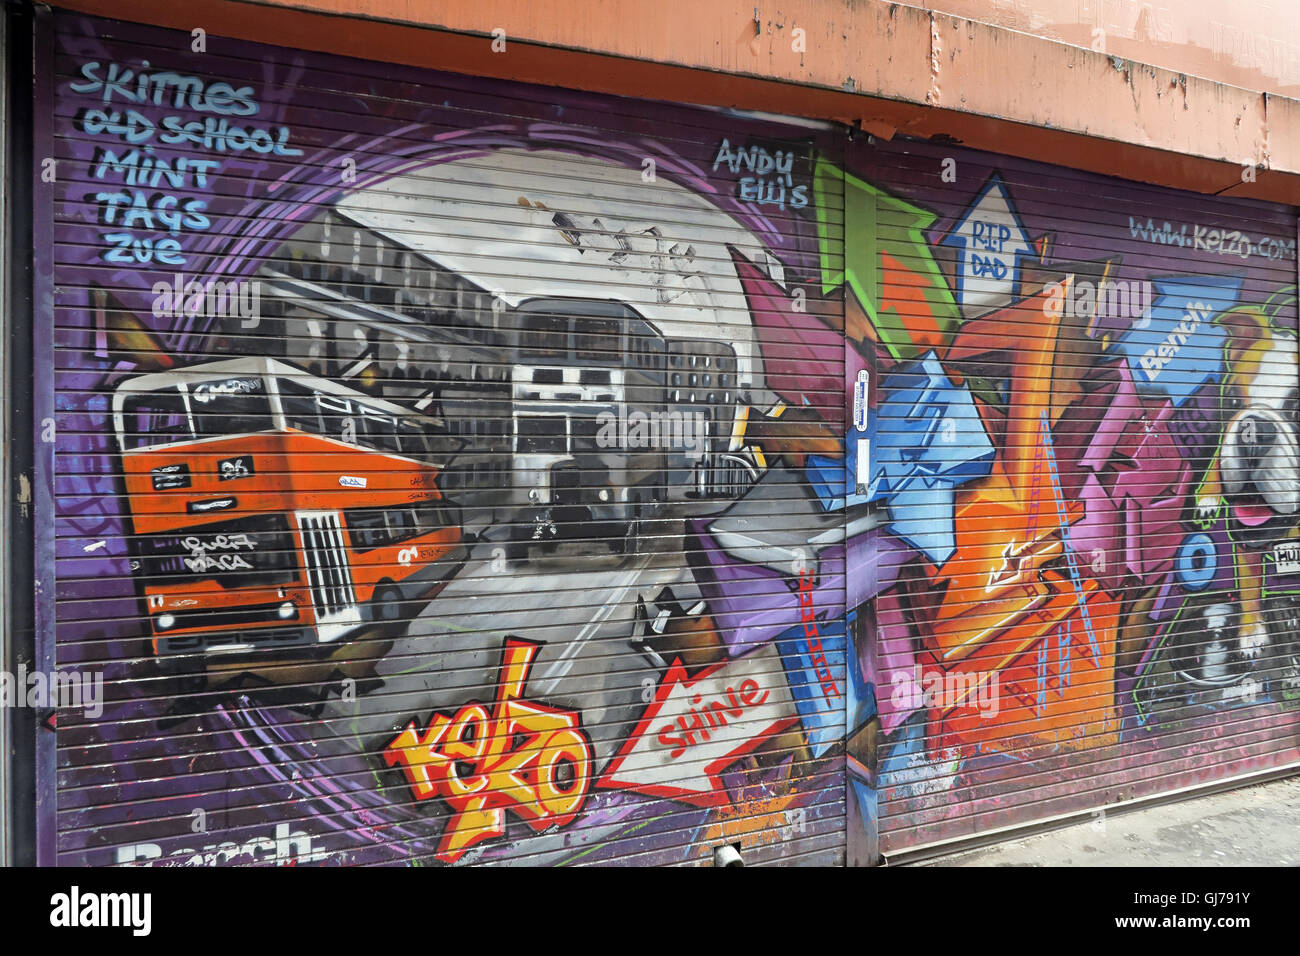 Kelzo Manchester mural in shutter, Koffee Pot, Northern Quarter Artwork, NQ, Manchester, North West England, UK, - Stock Image